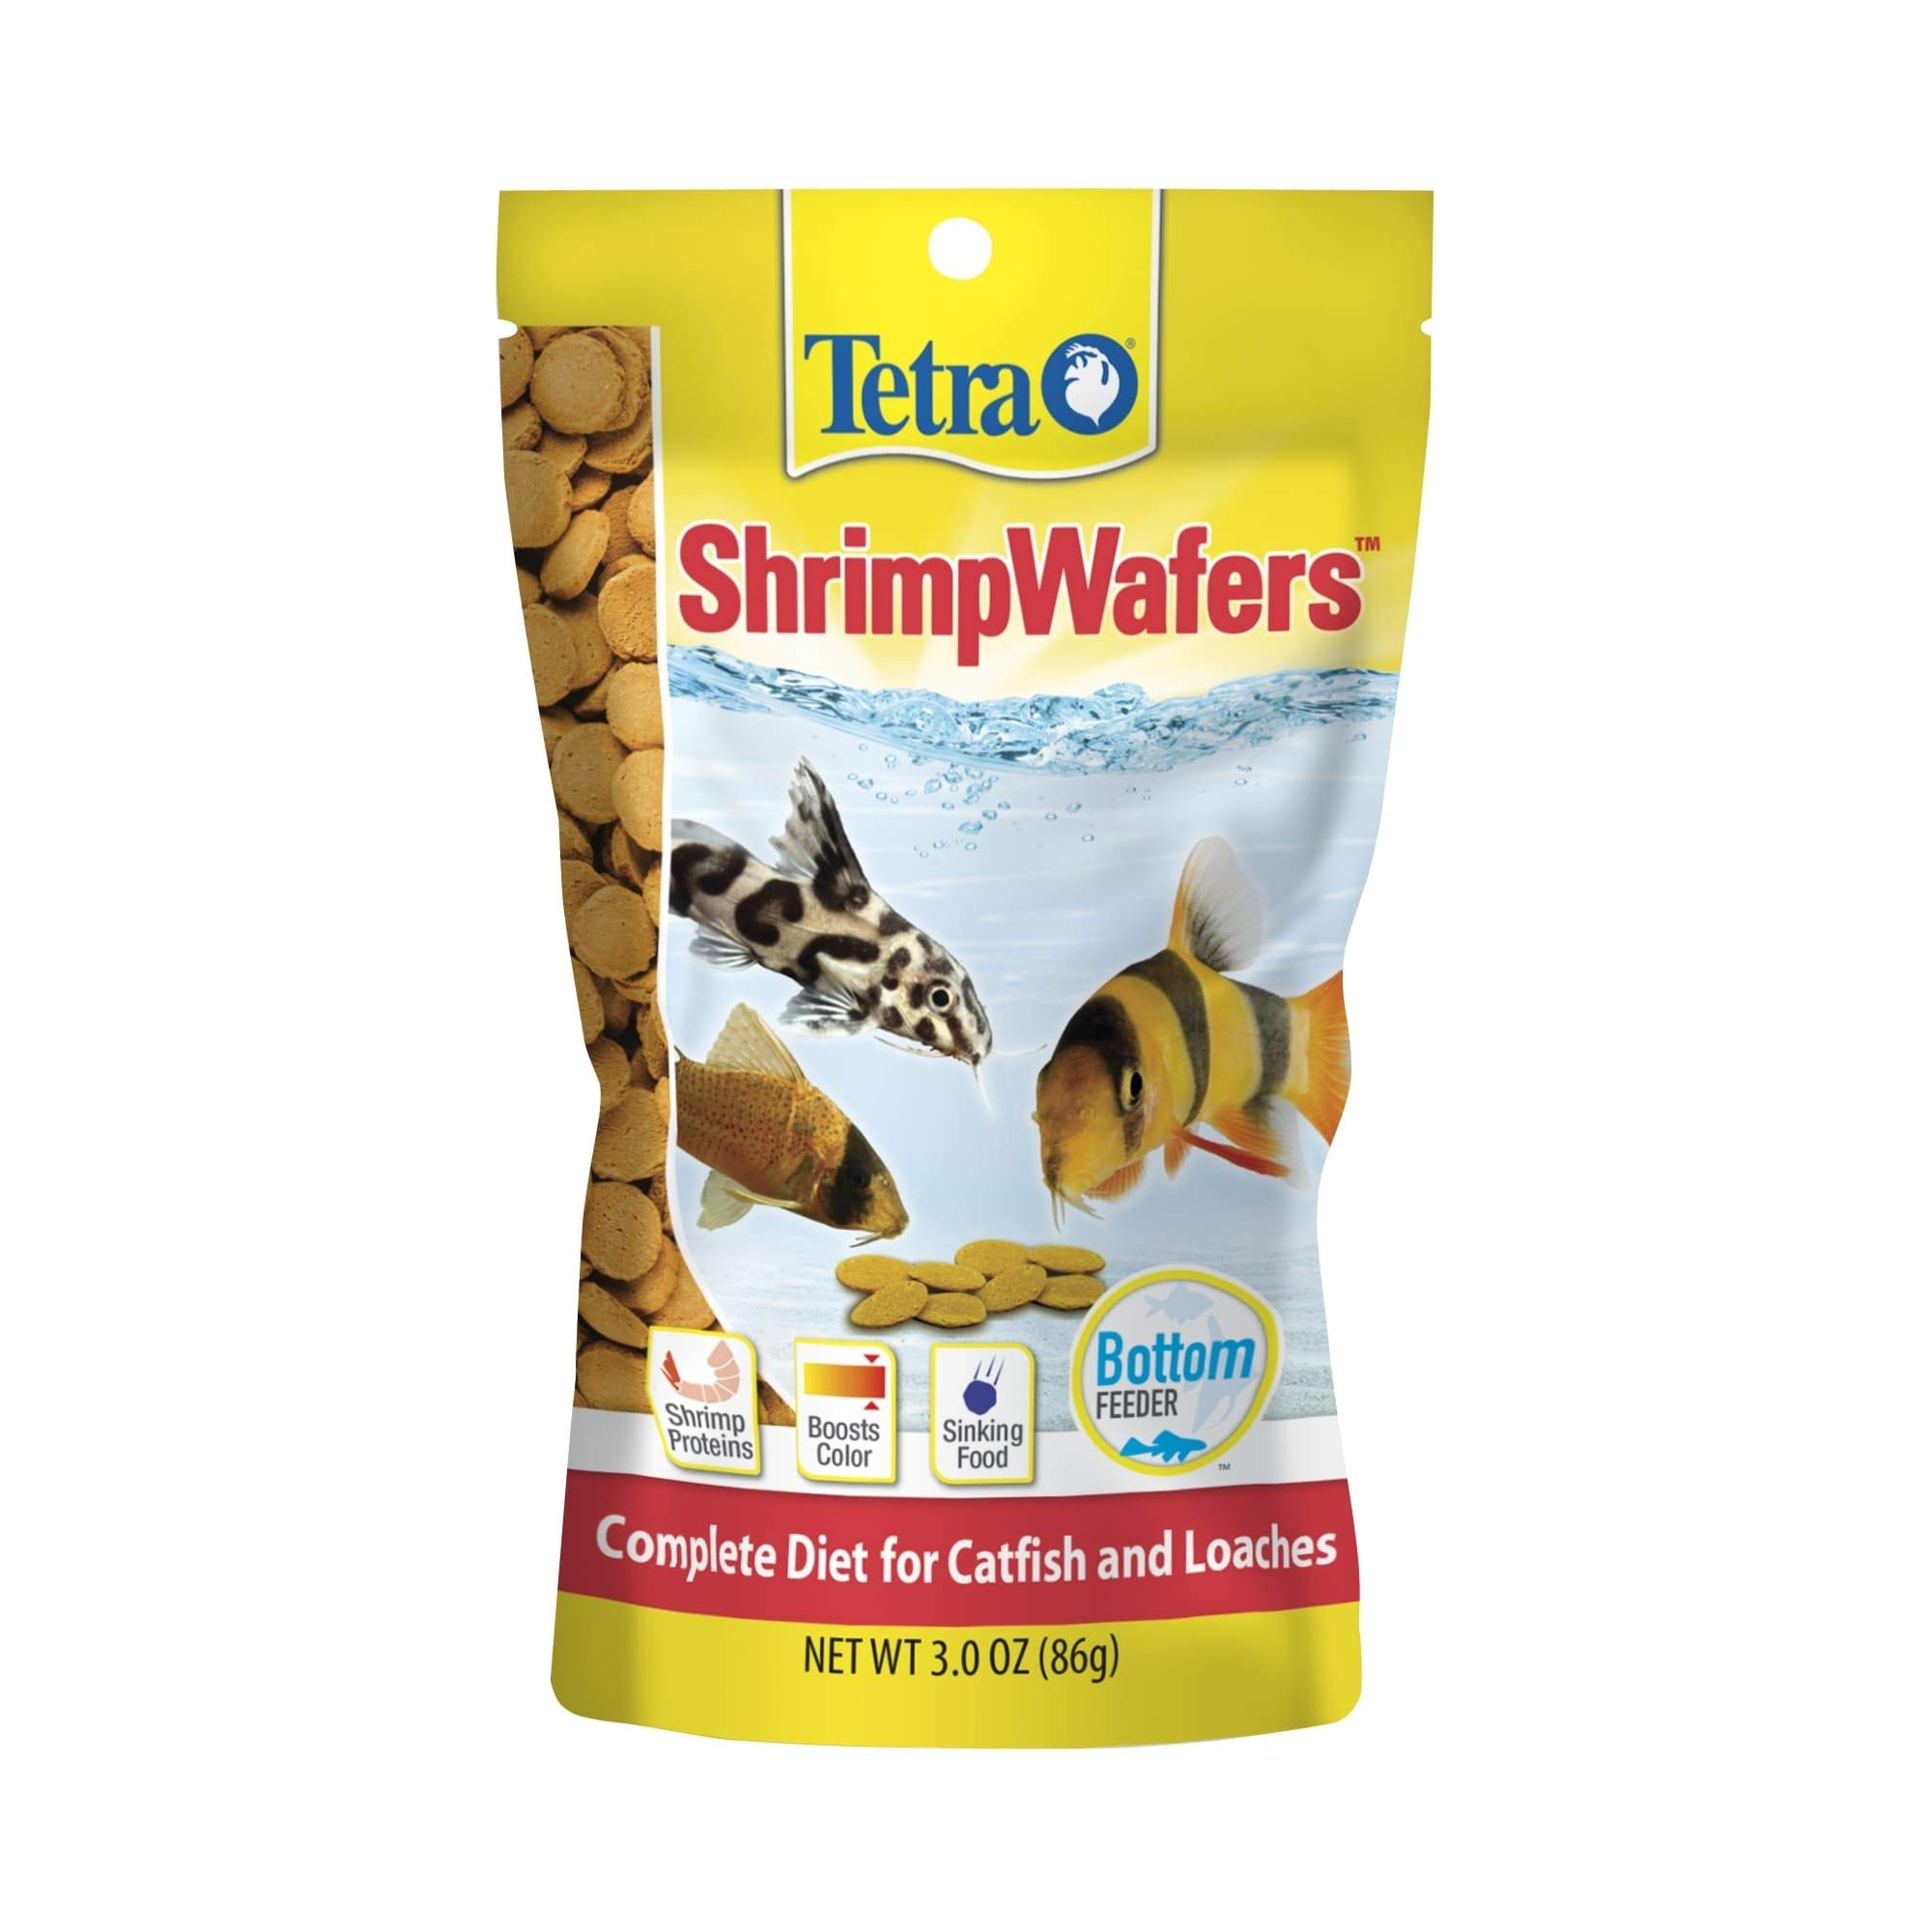 Tetra ShrimpWafers Complete Diet for Catfish and Loaches 3 Ounce